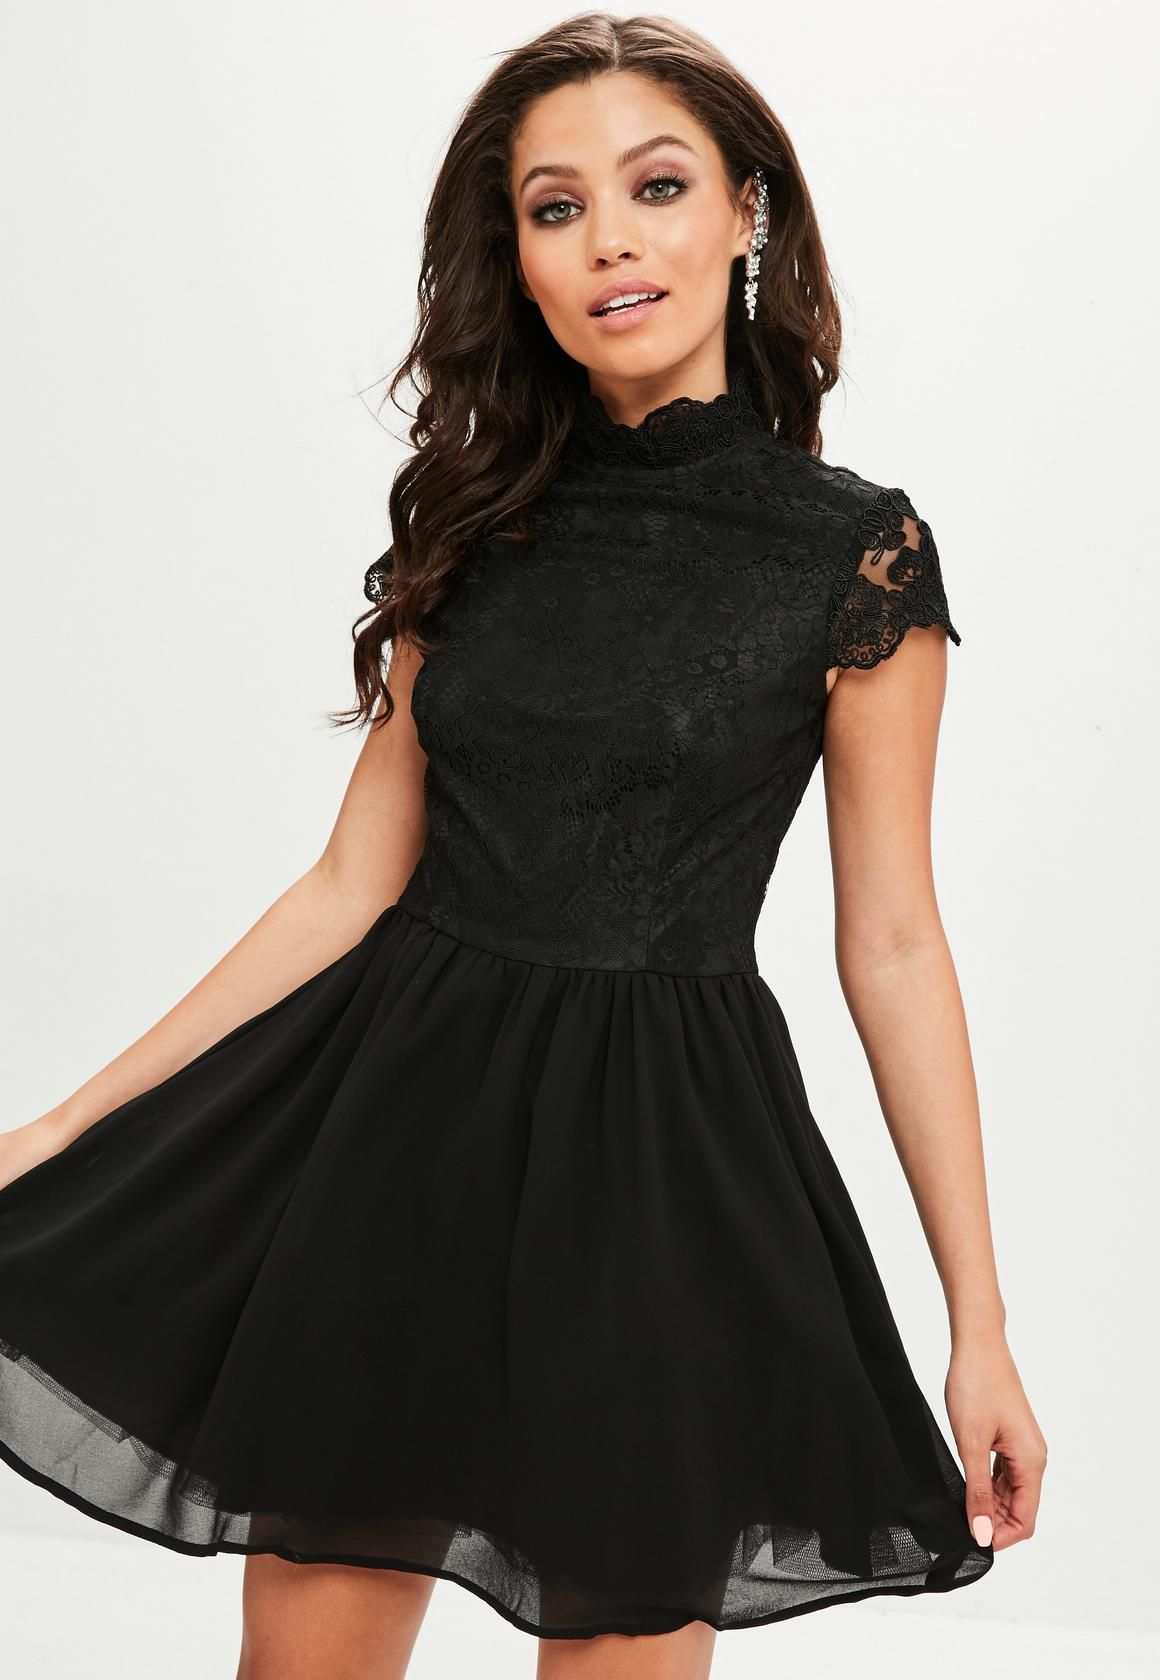 Missguided - Black High Neck Lace Skater Dress  1b1154baa